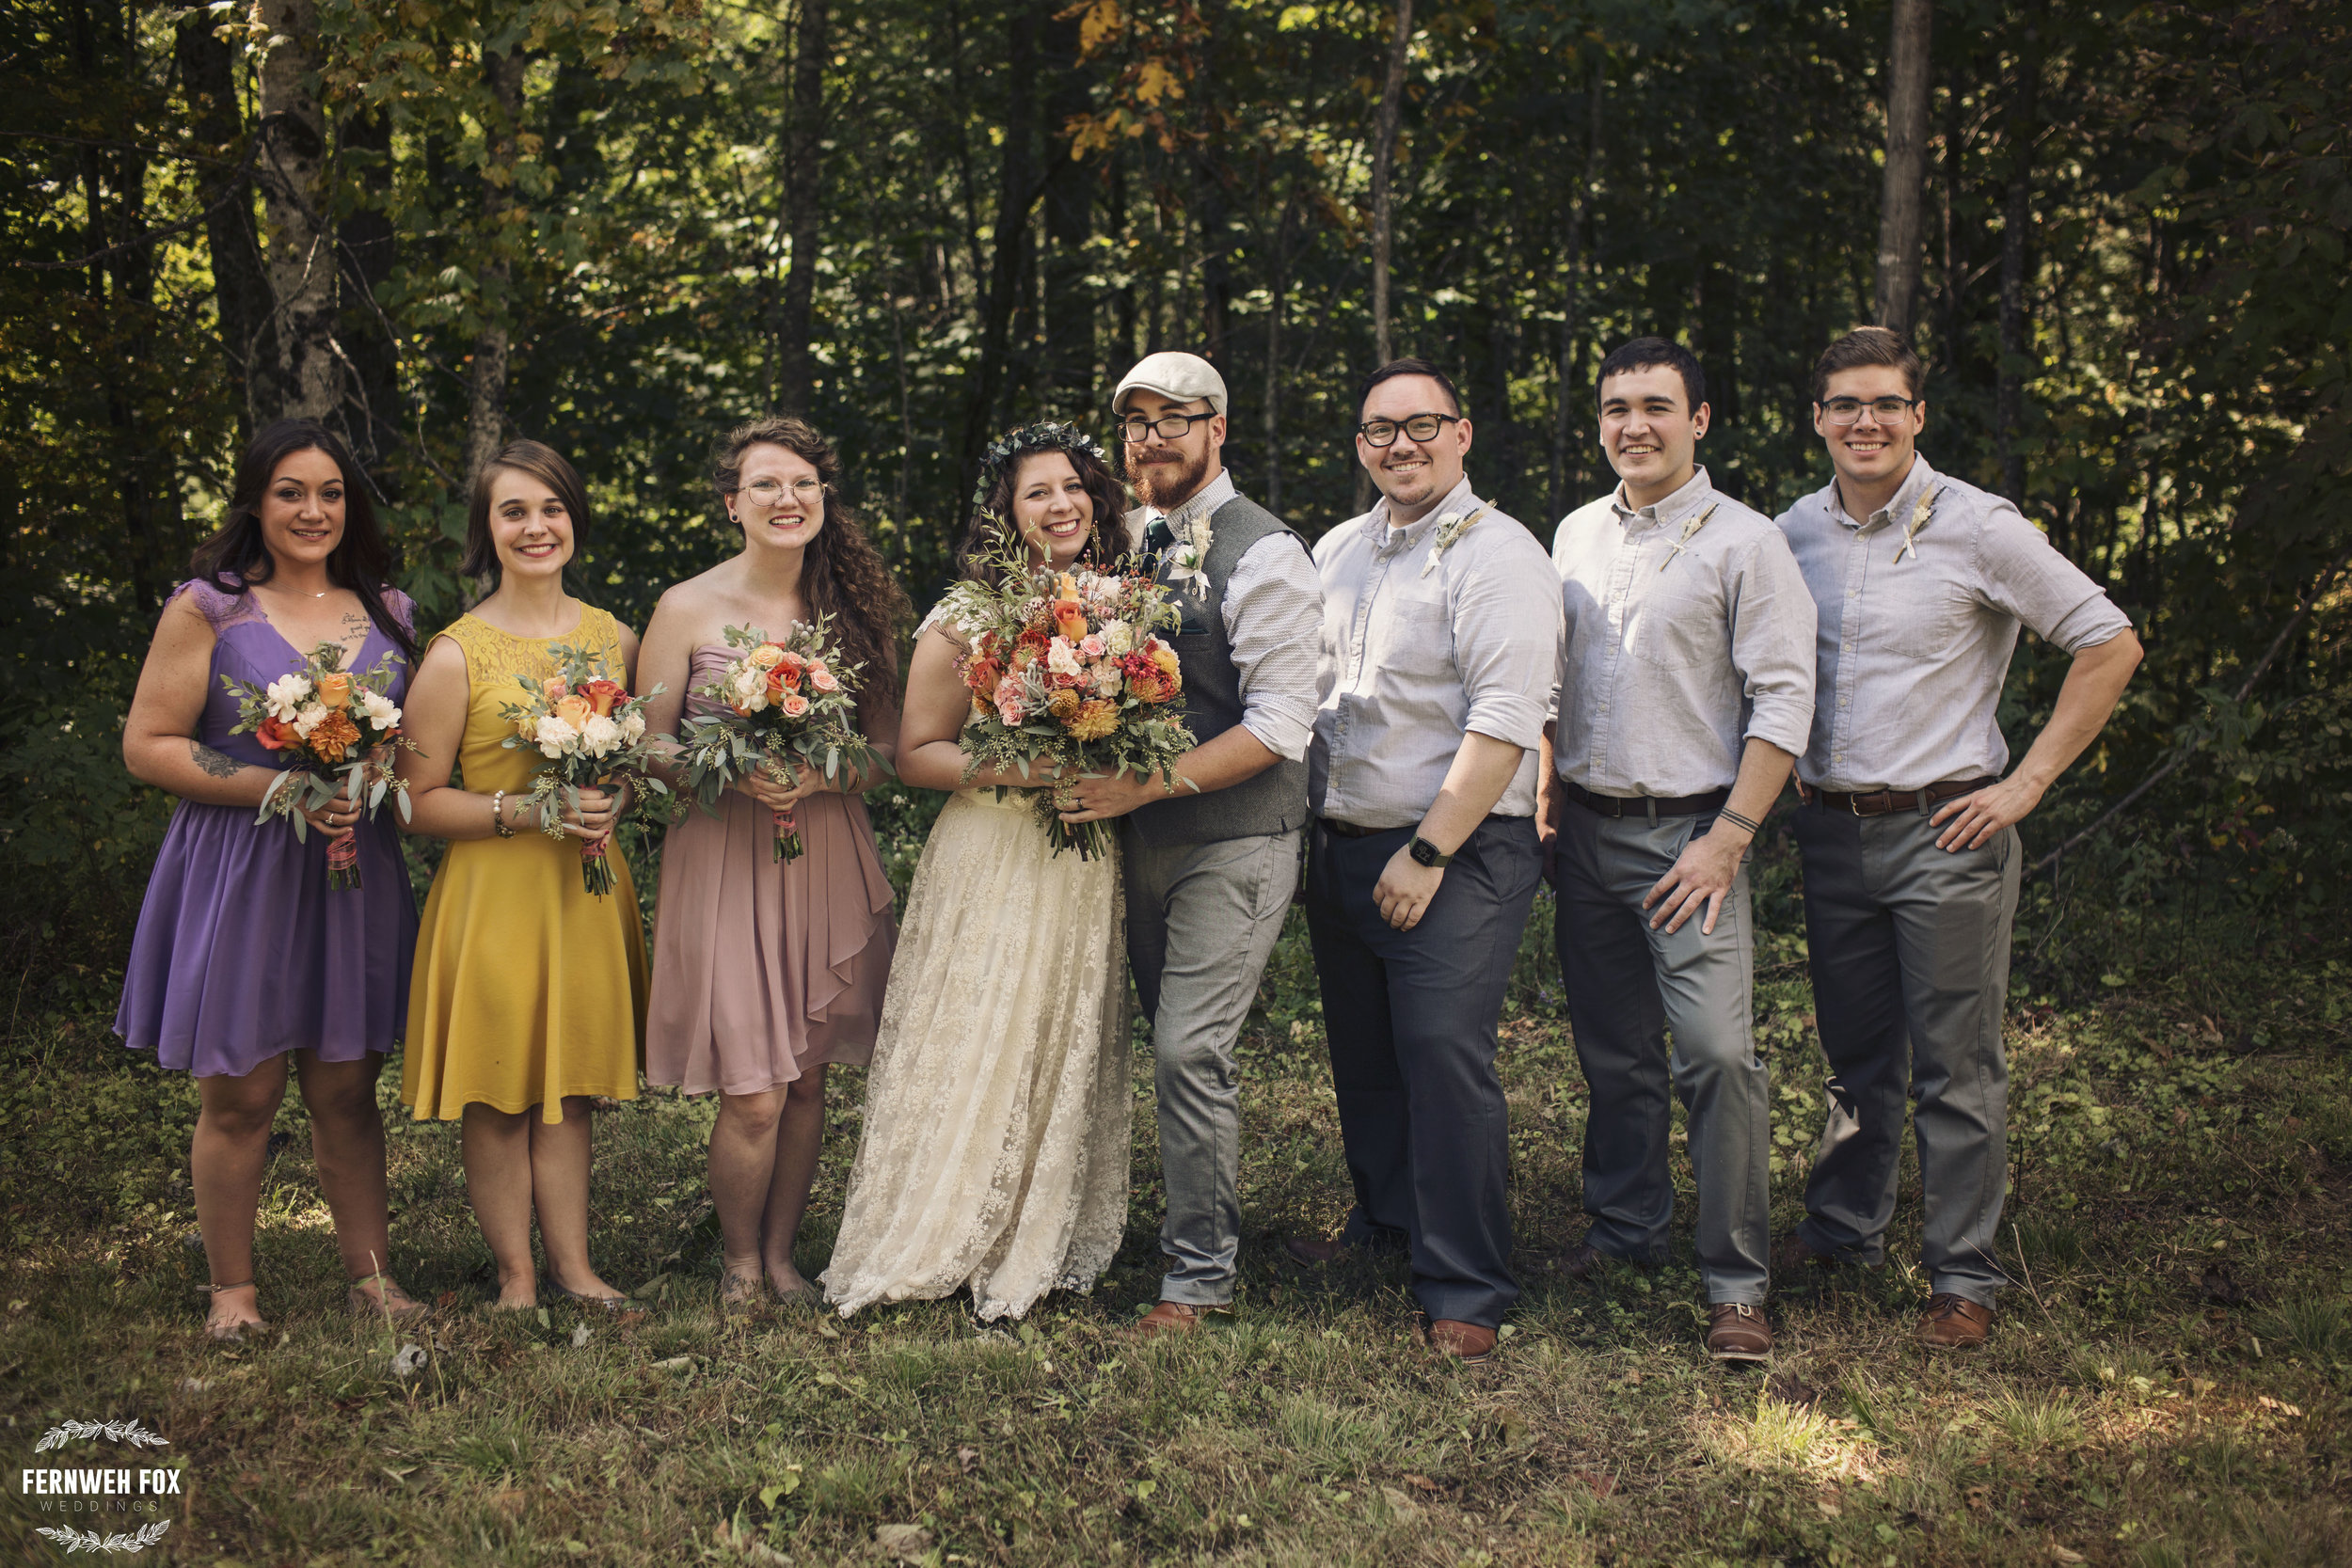 What a fabulous group of people to celebrate this wedding with! Patrick had his three brothers by his side. Emily had her new sister and two childhood friends. Talk about perfection.